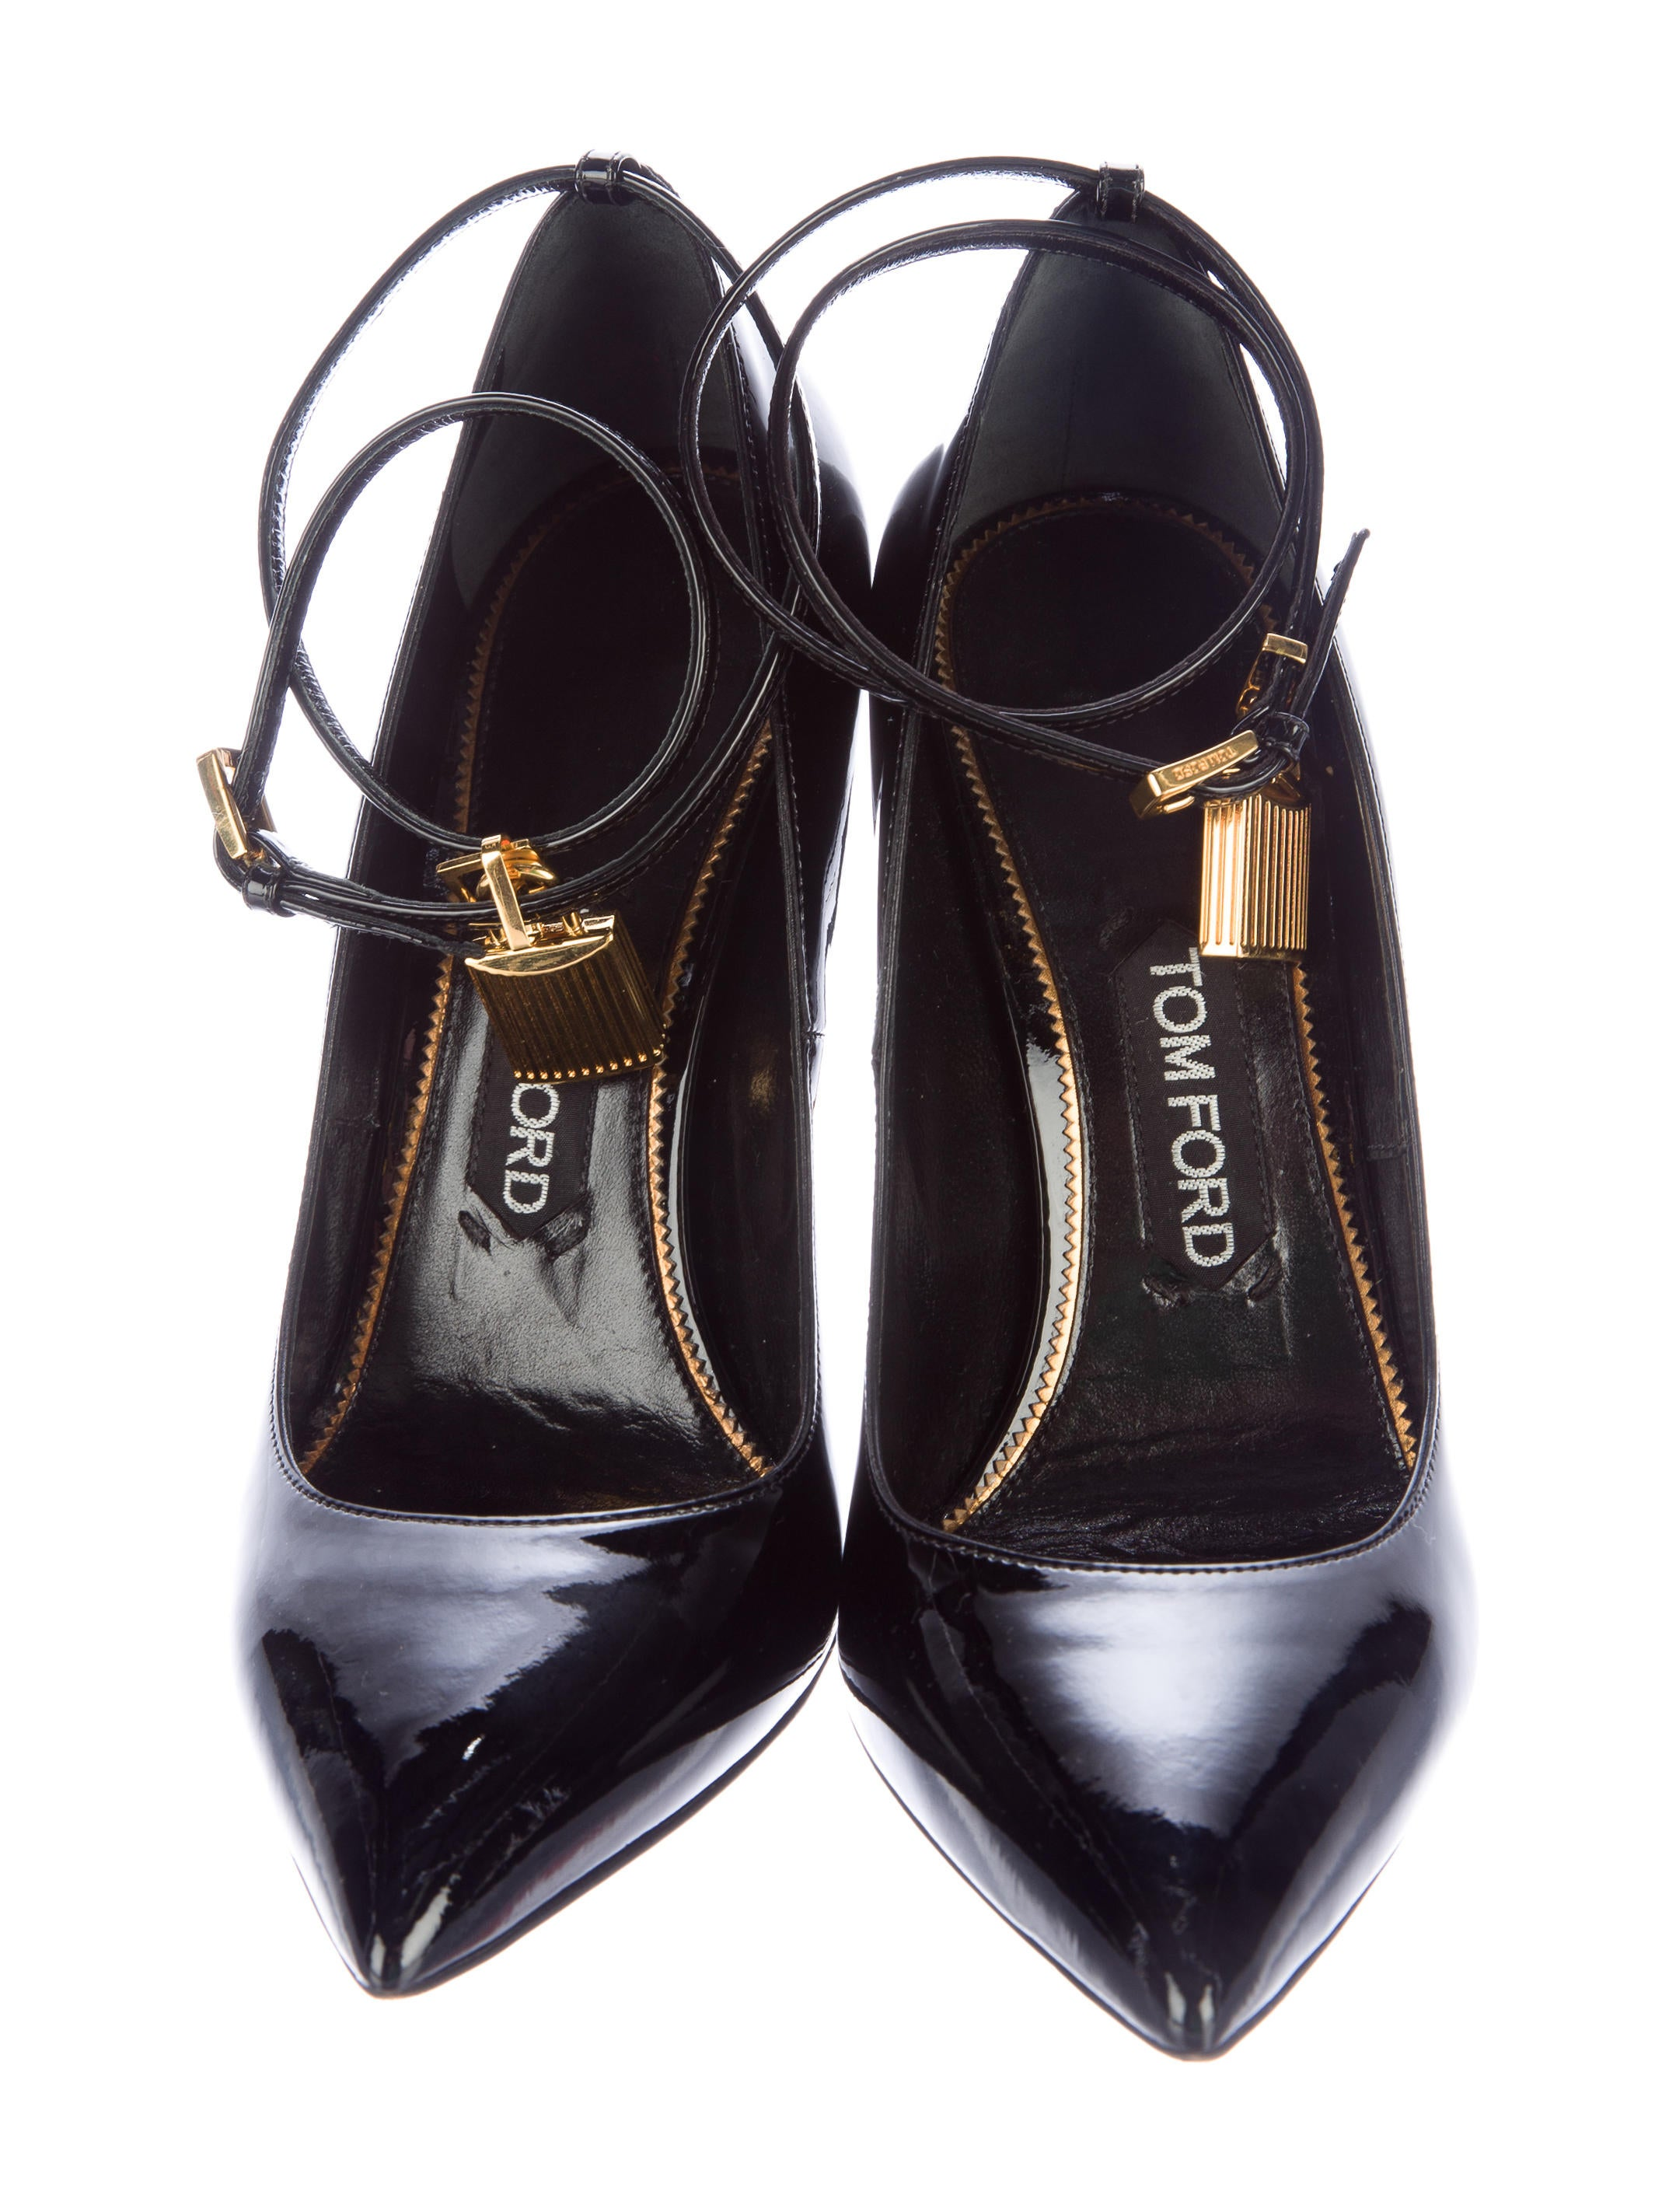 tom ford patent leather padlock pumps shoes tom33304. Black Bedroom Furniture Sets. Home Design Ideas